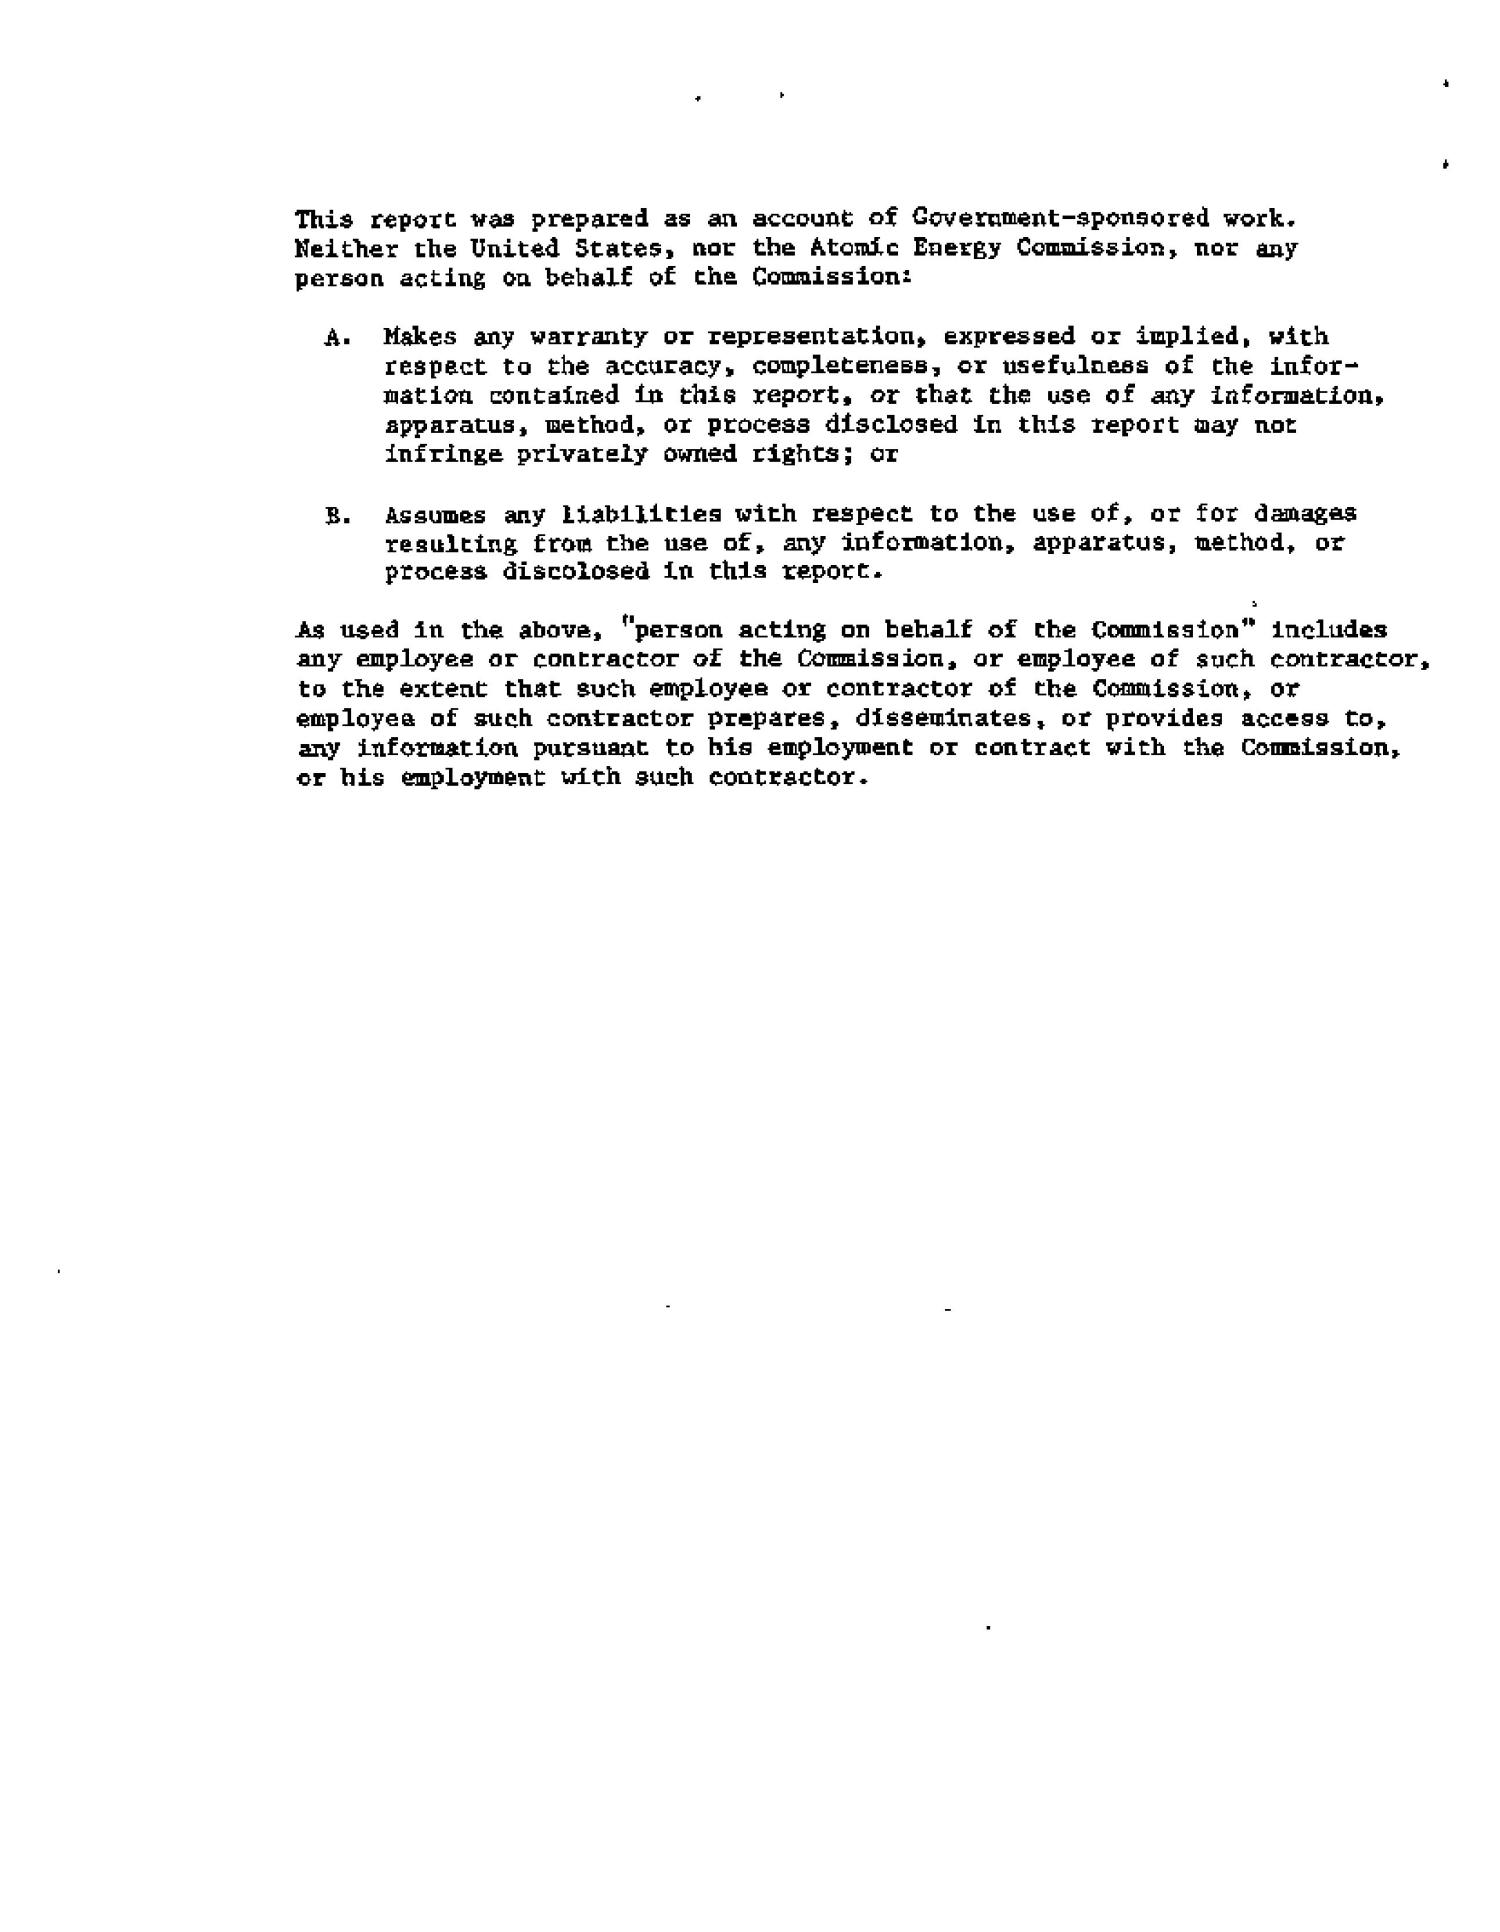 Spectroscopy of nuclear systems. Progress report, January 1--December 31, 1974                                                                                                      [Sequence #]: 4 of 53